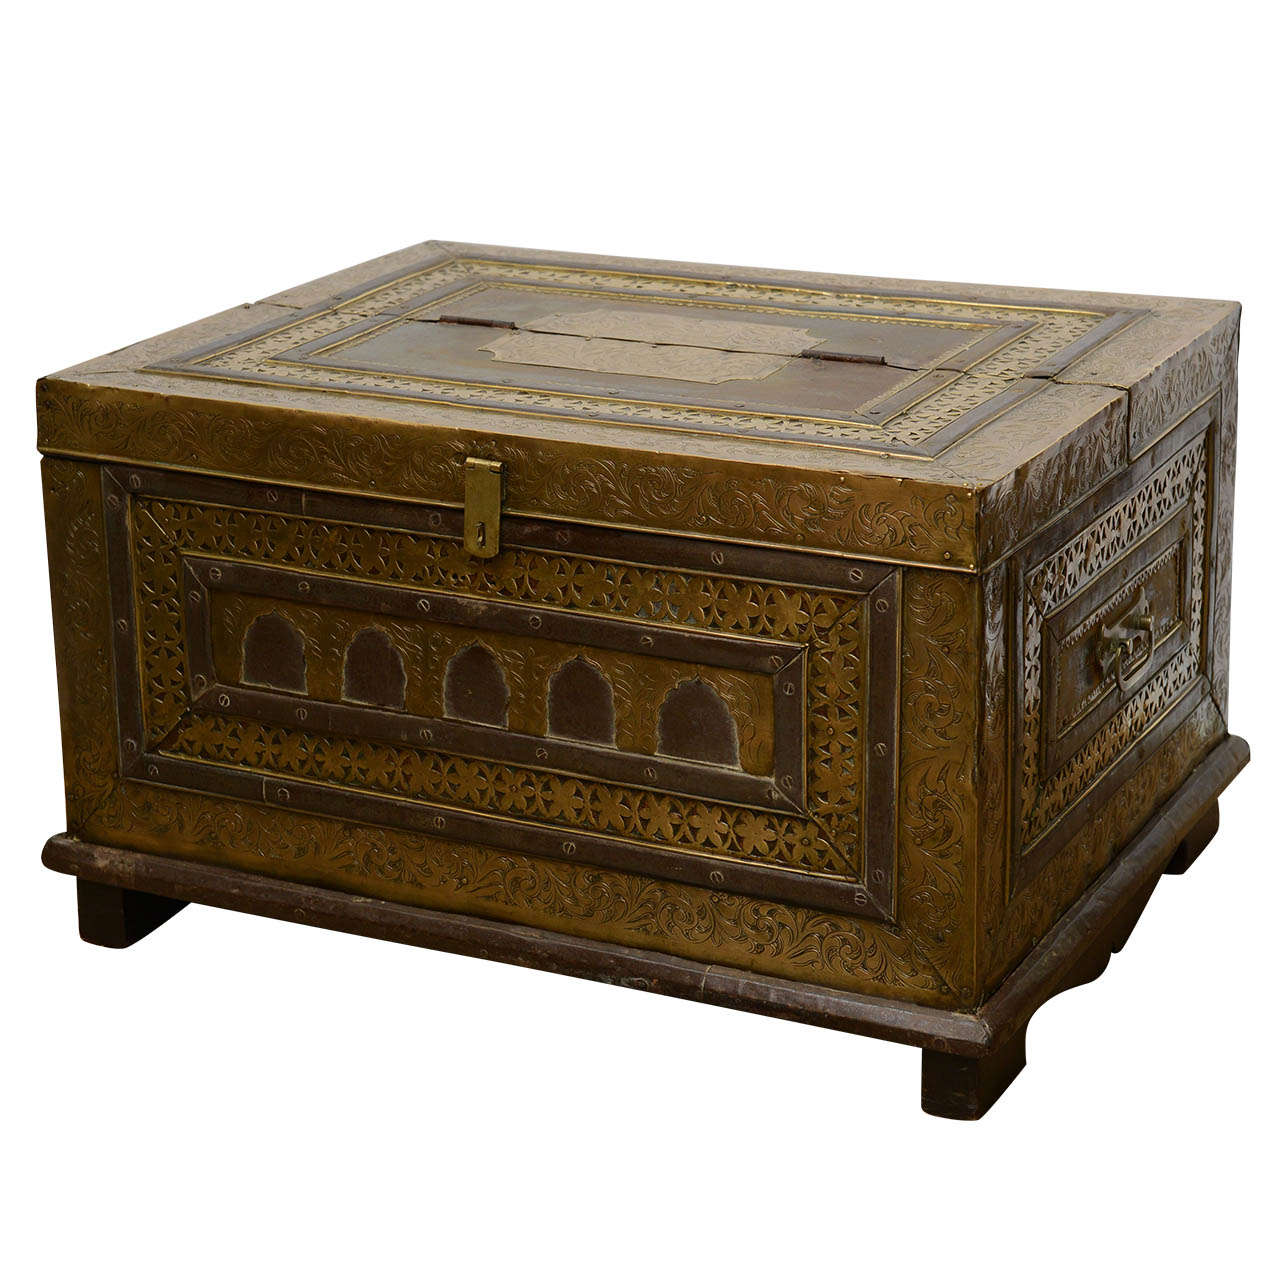 Unique Antique Moroccan 19th Century Large Brass and Wood Trunk at 1stdibs PG52